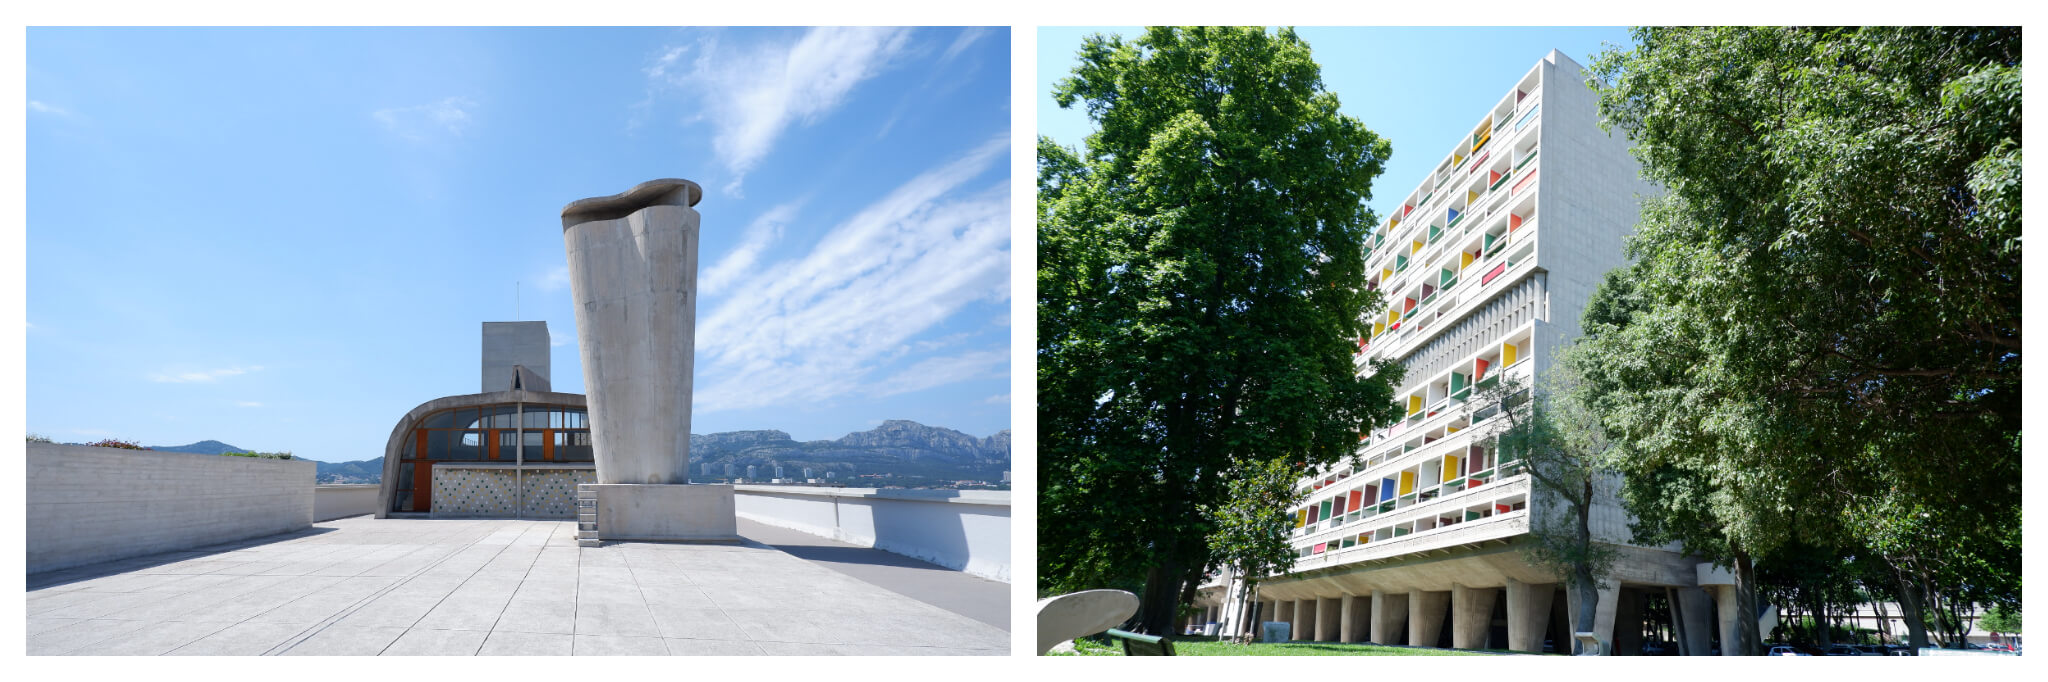 """Right: The industrial rooftop of Cité Radieuse looking out over the city of Marseille. Left: The outside of Le Corbusier's white and multi coloured """"Unité d'Habitation"""""""